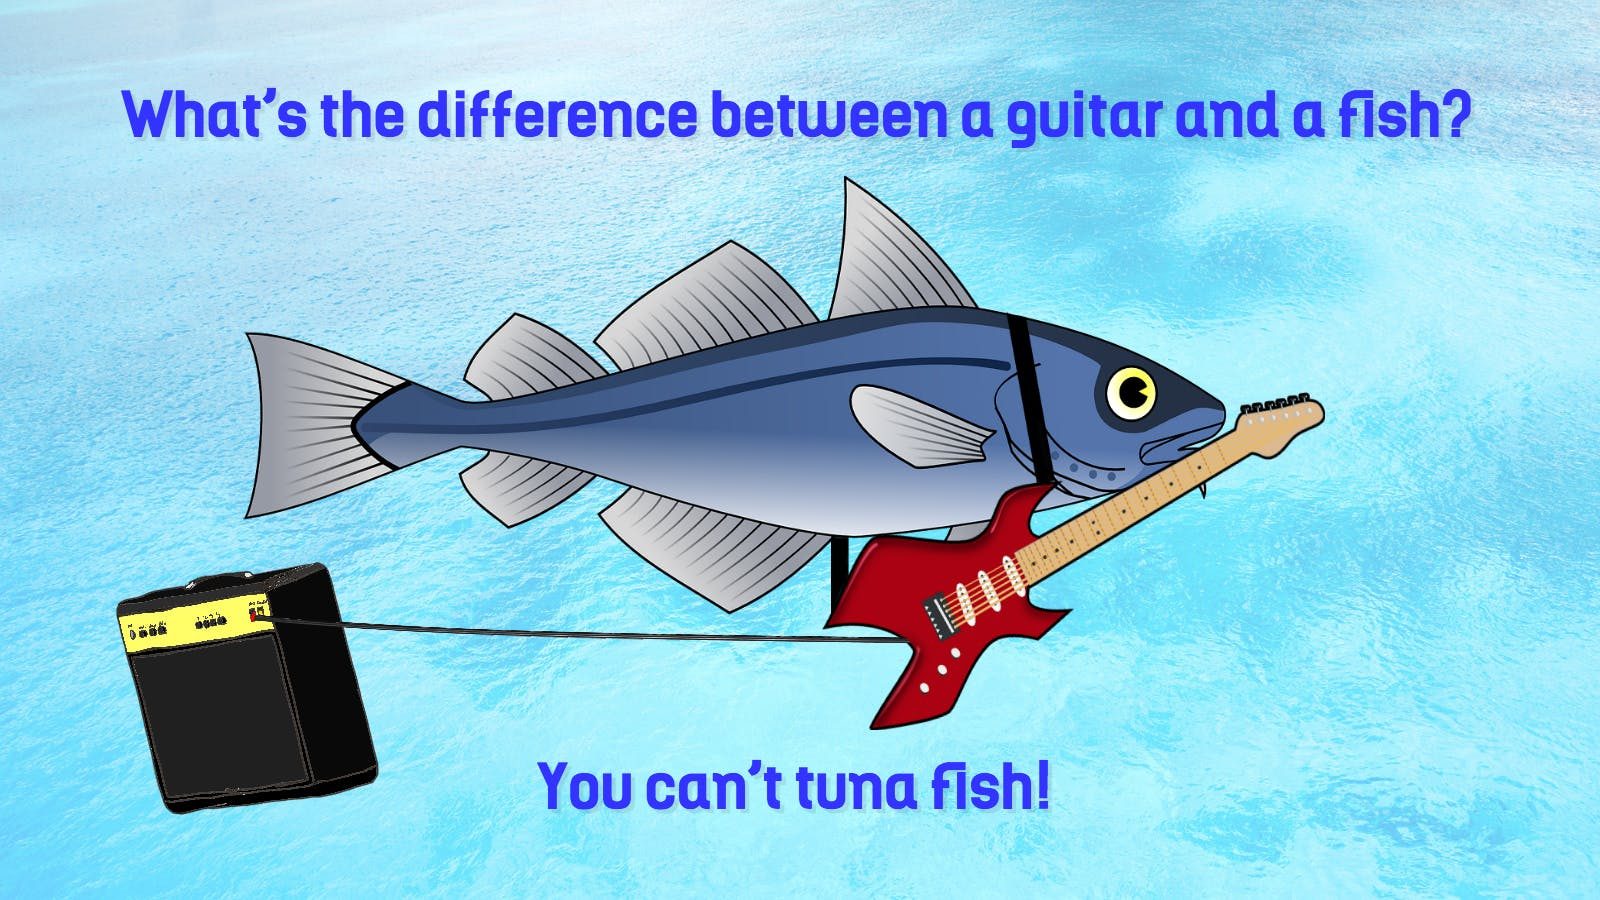 What s the difference between a guitar and a fish jokes on beano com